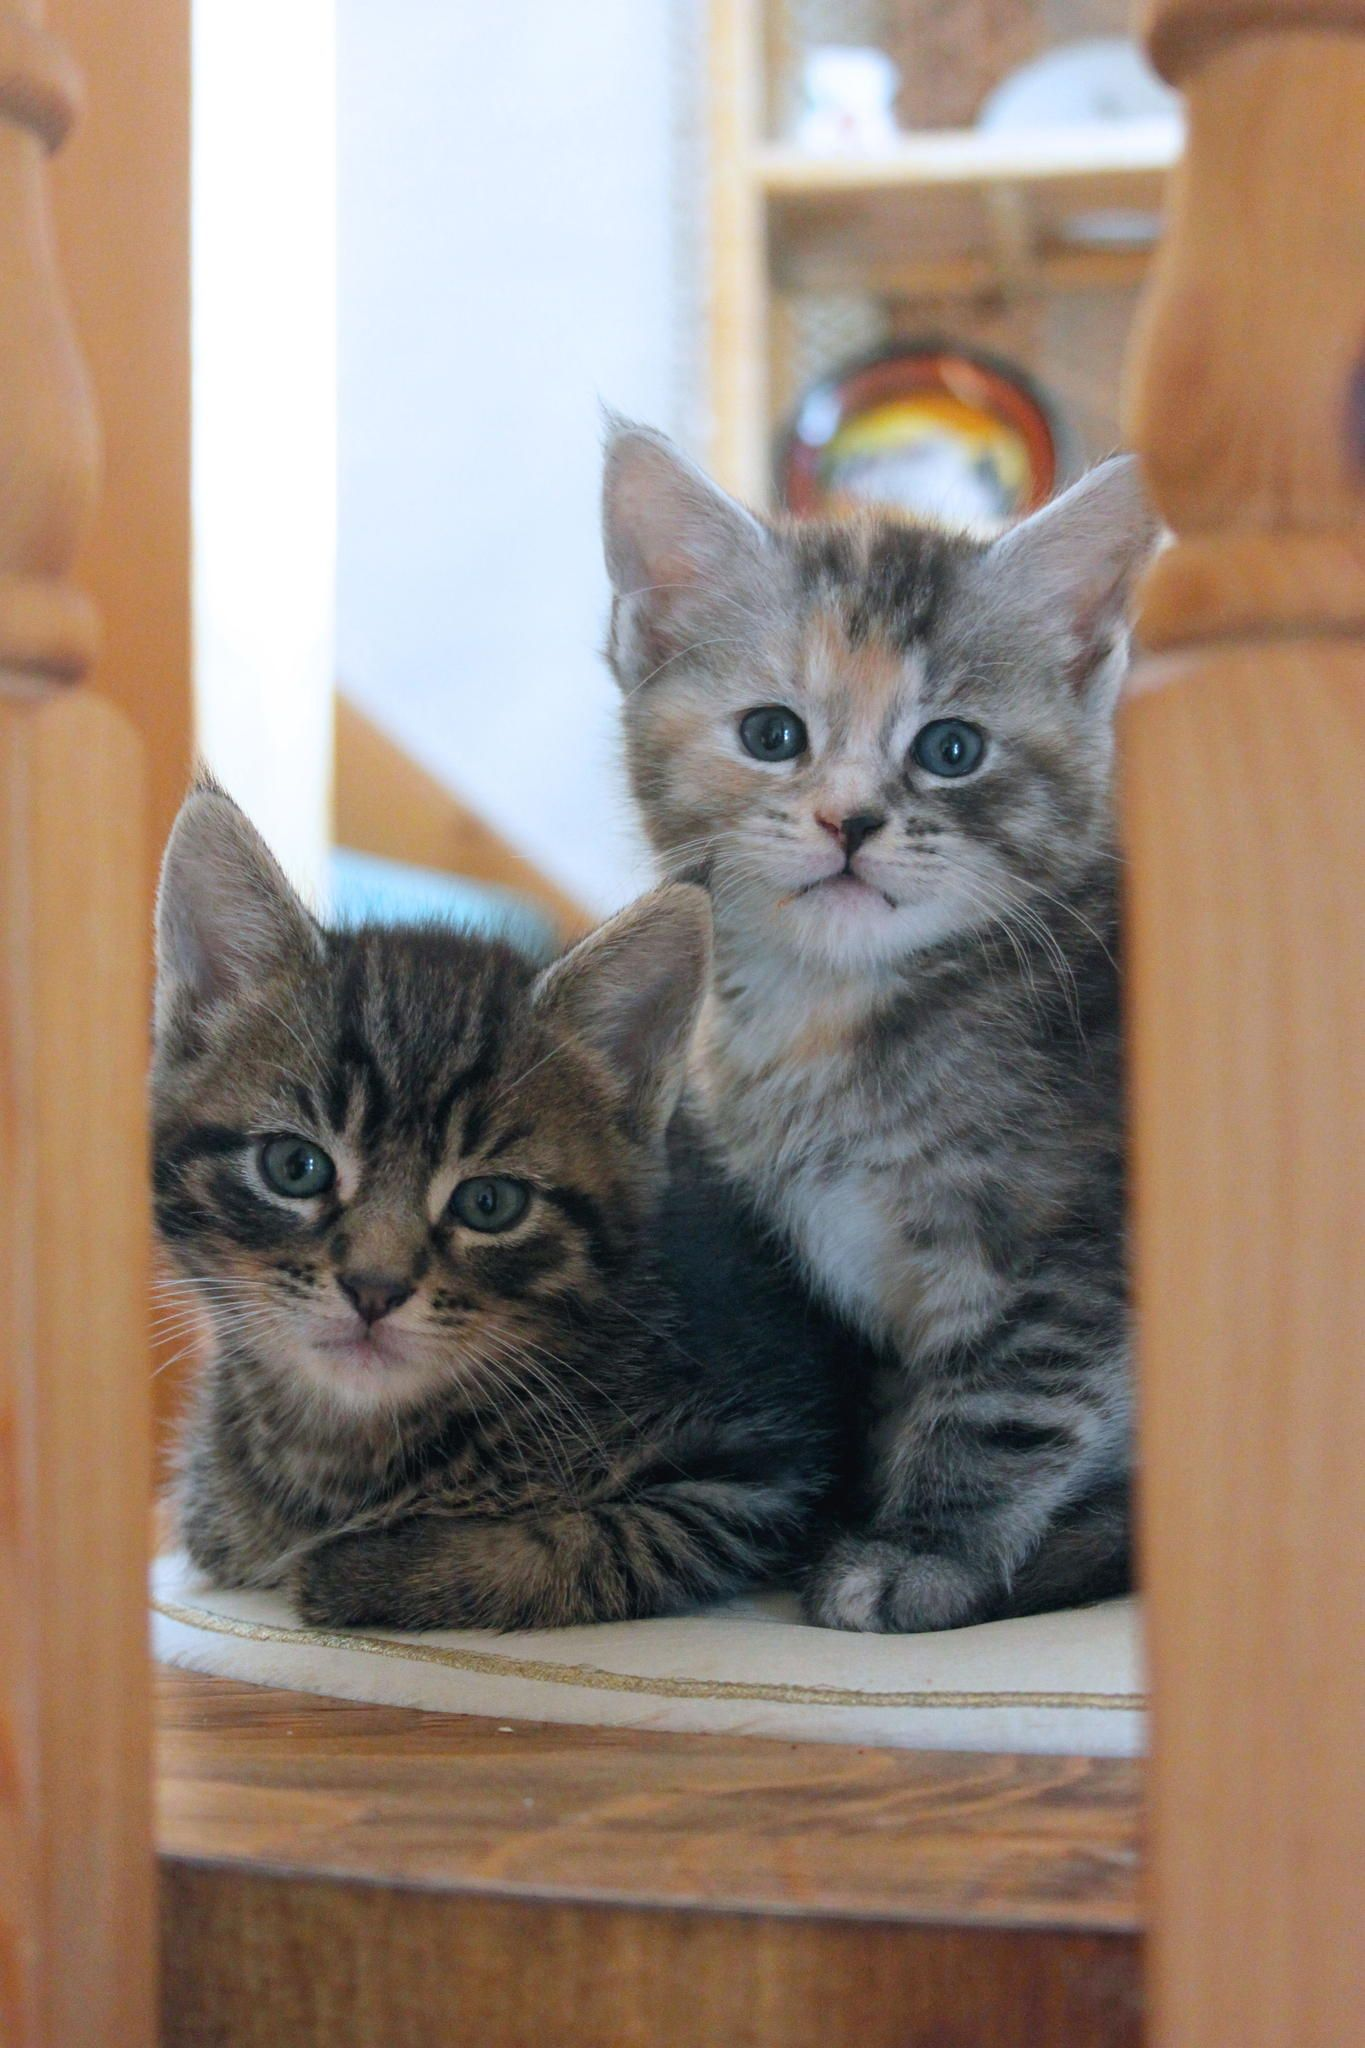 Two Kittens On A Box Kittens Cats Pretty Cats